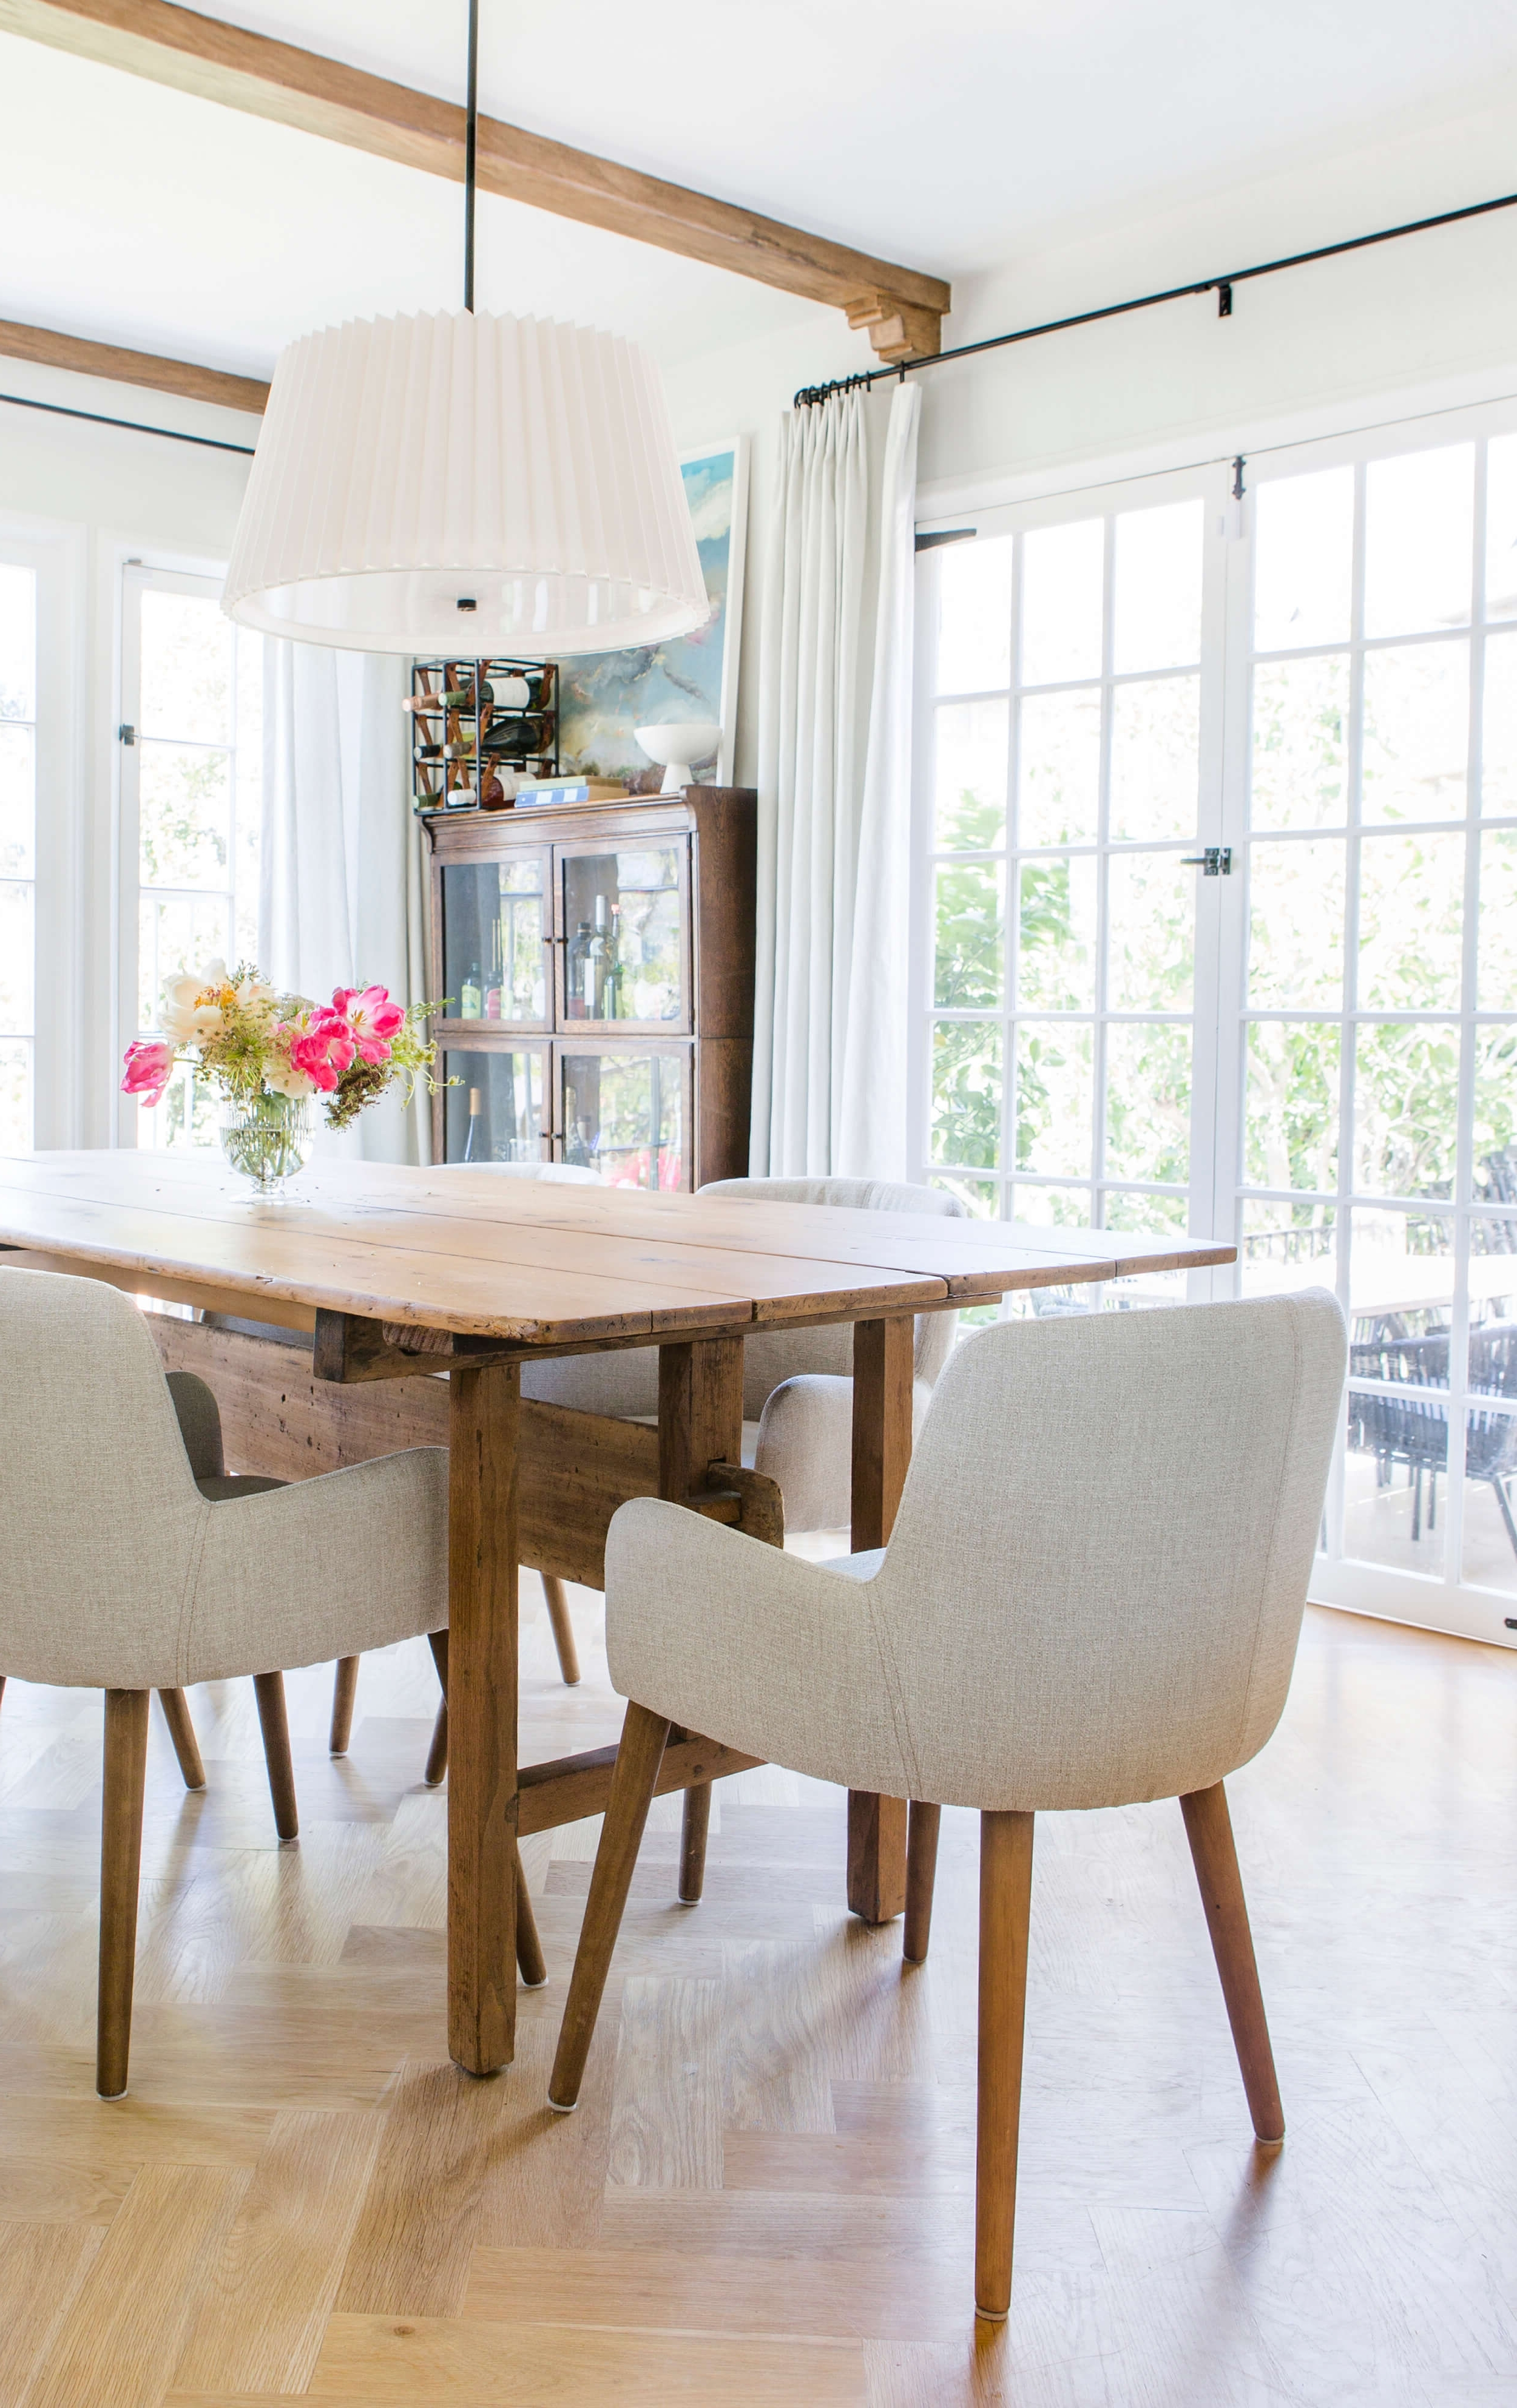 Trendy An Update On My Dining Room – Emily Henderson With Regard To Market 6 Piece Dining Sets With Host And Side Chairs (View 19 of 25)